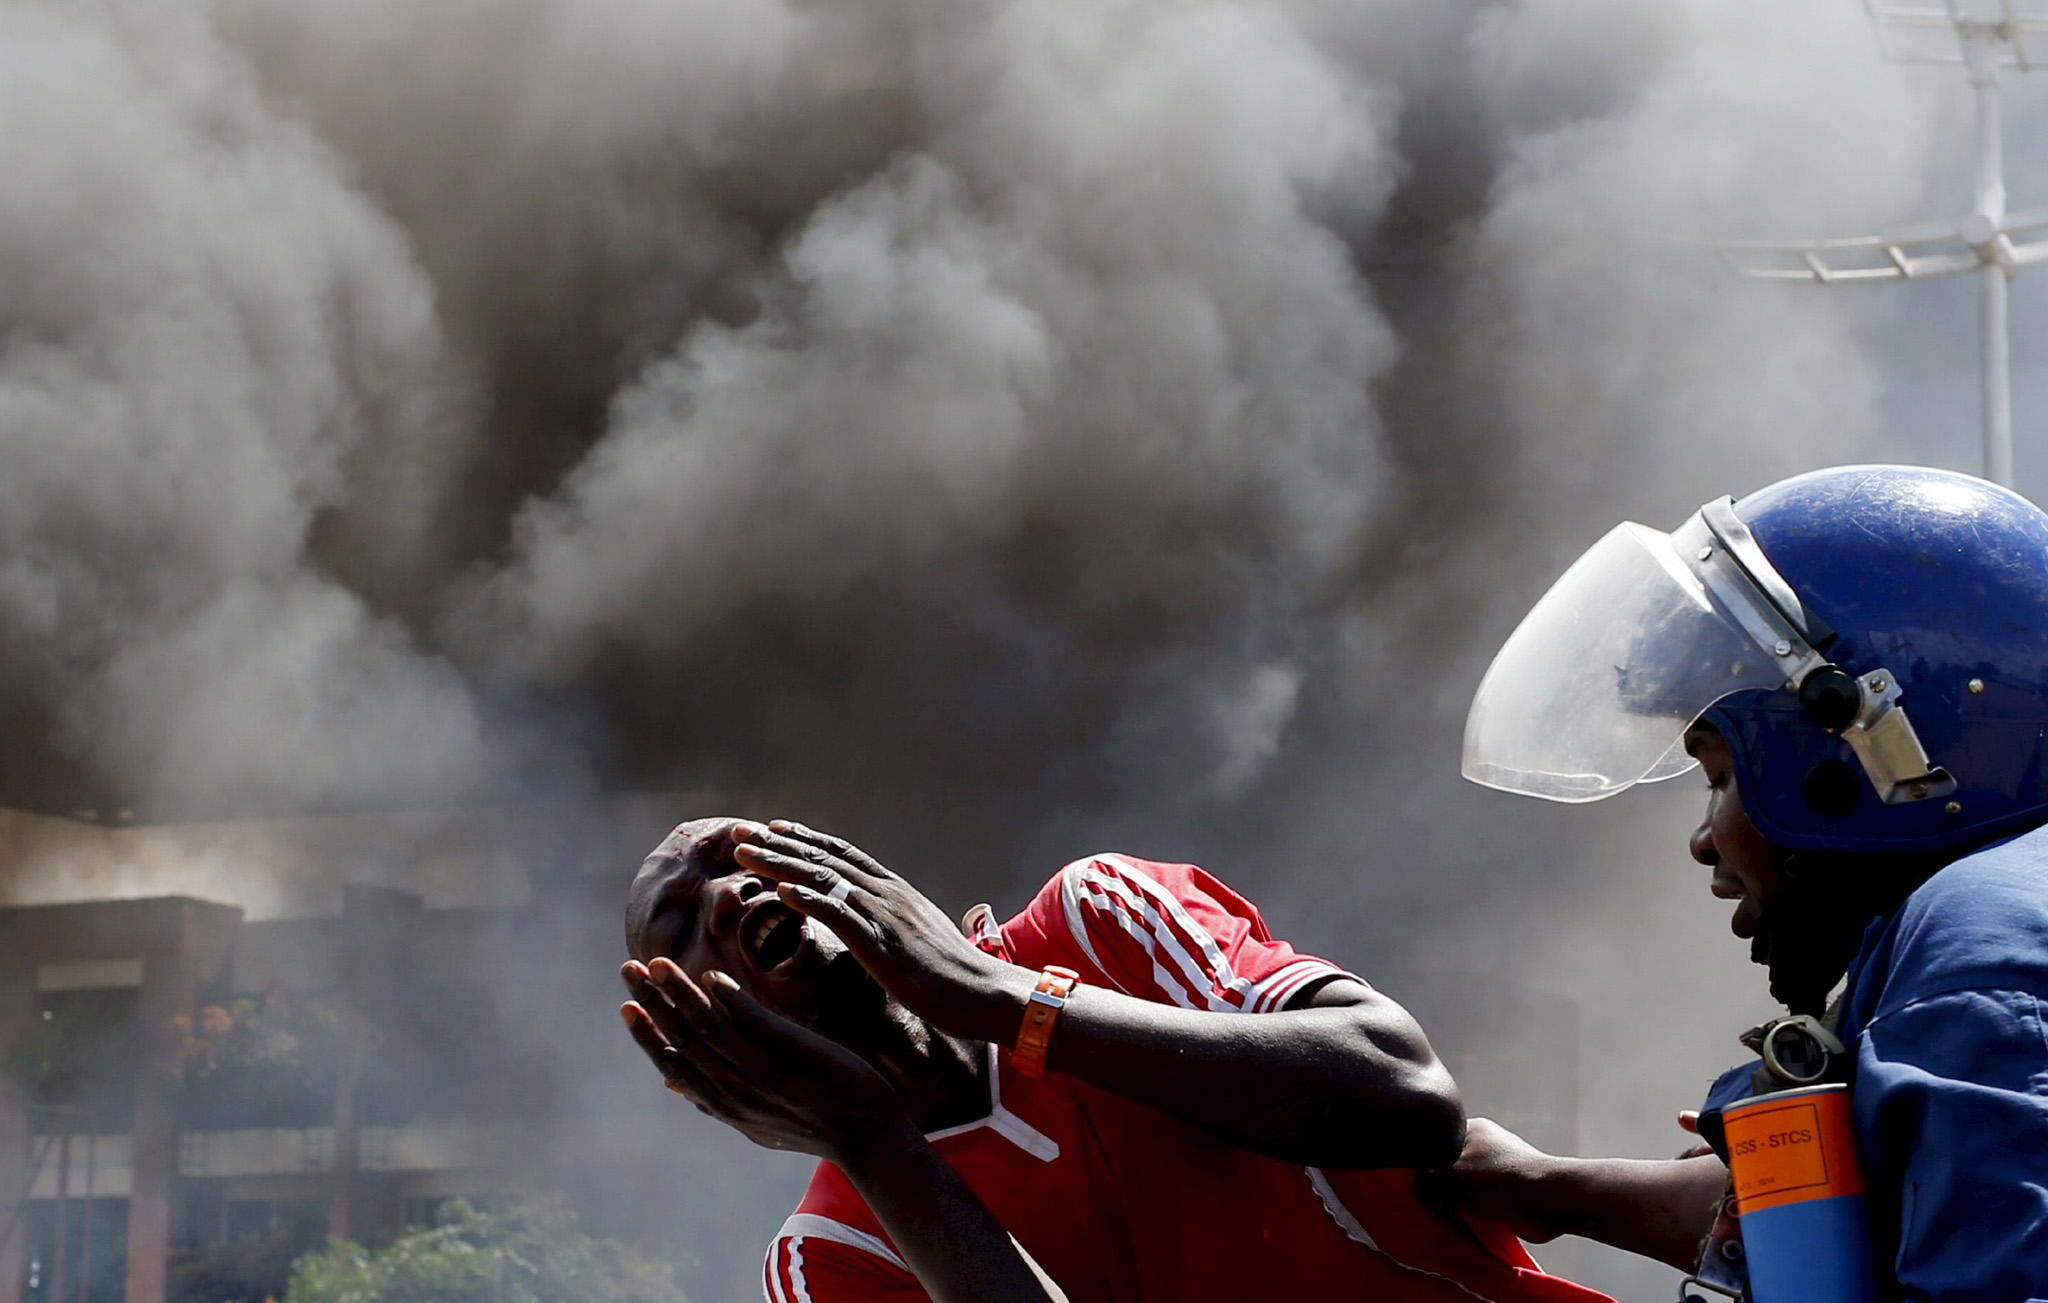 A detained protester cries in front of a burning barricade during a protest against President Pierre Nkurunziza's decision to run for a third term in Bujumbura, Burundi May 13, 2015.